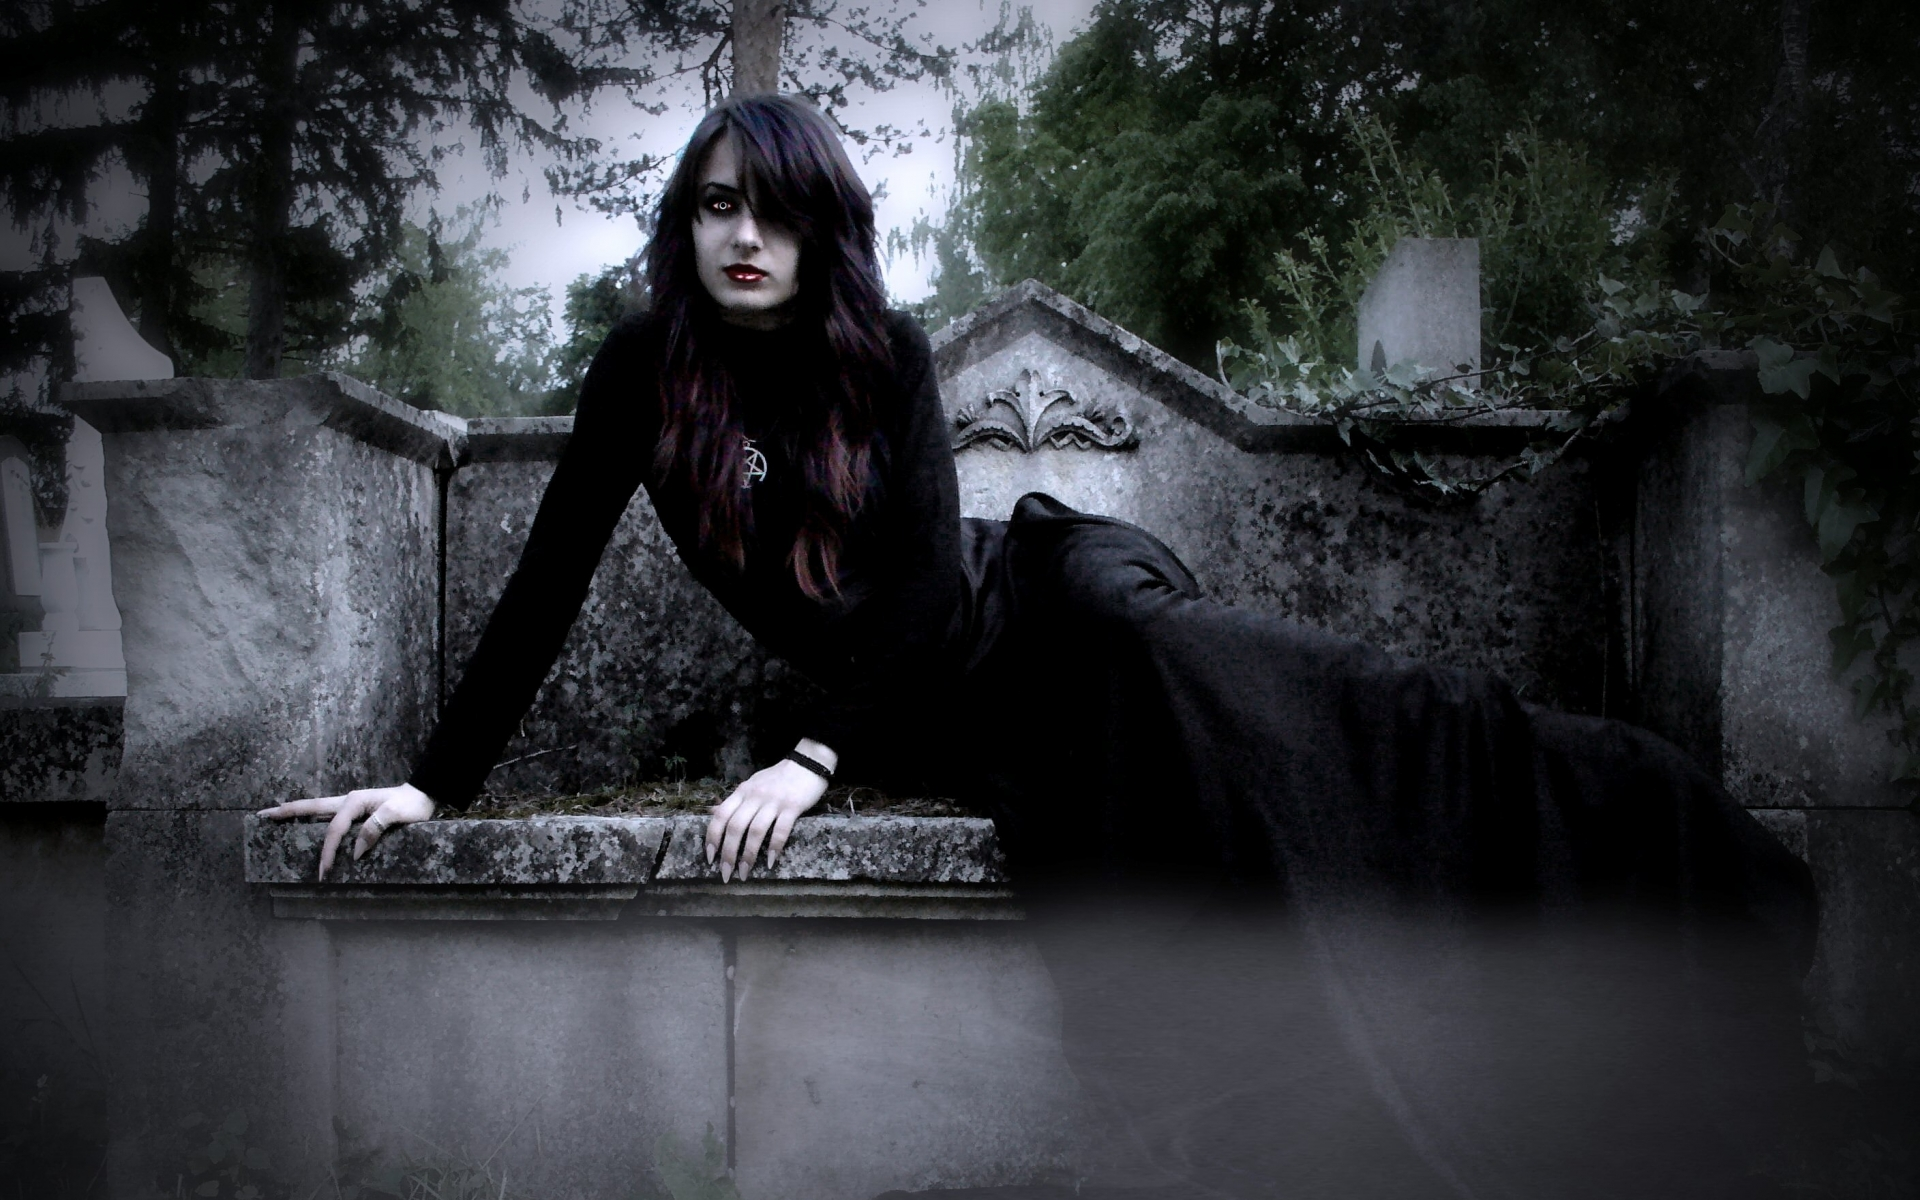 Fantasy dark gothic vampire horror evil wallpaper 1920x1200